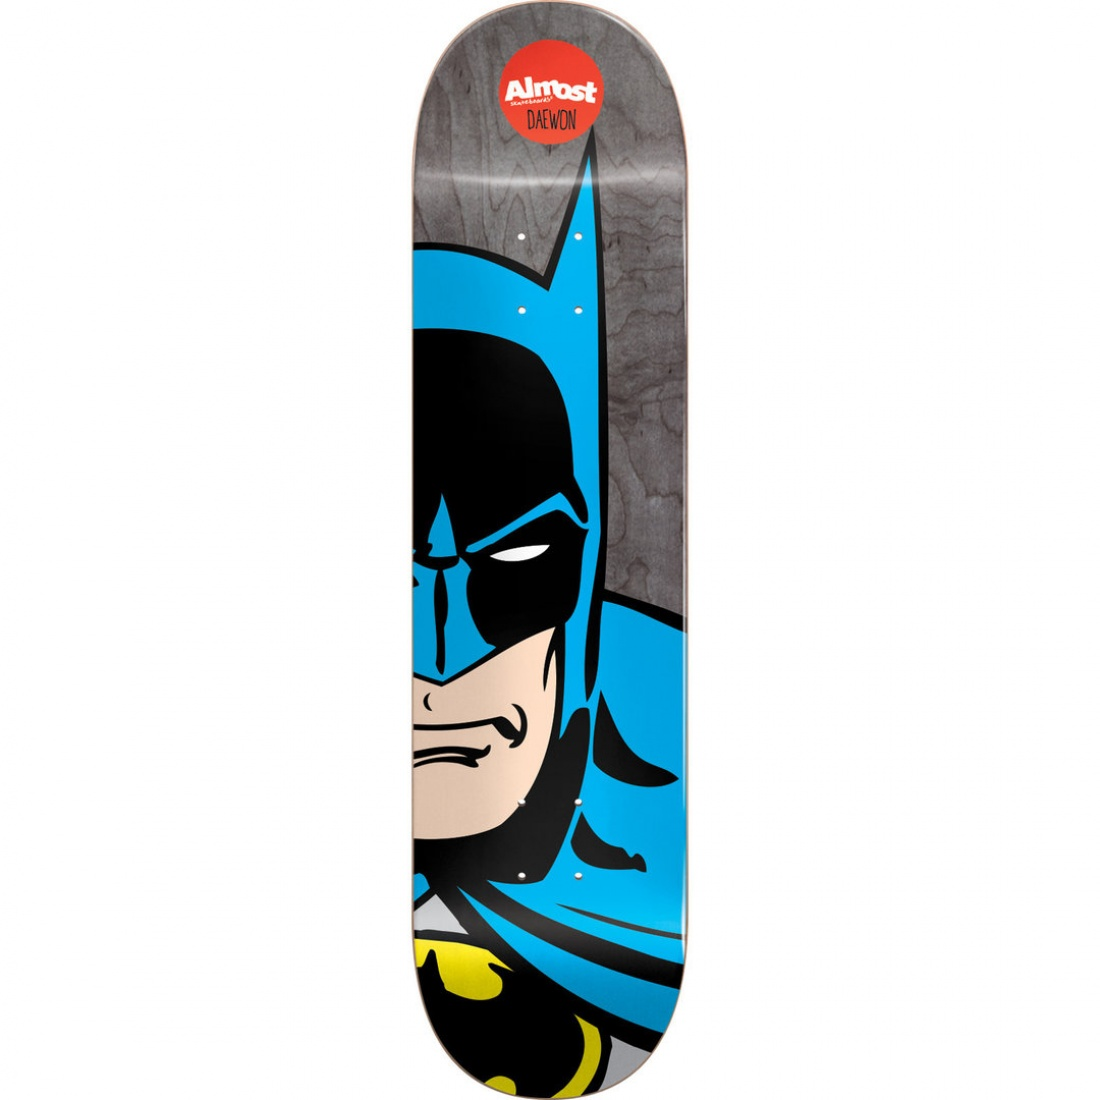 ALM-Superhero Splitface Daewon Song R7 8.25 Deck